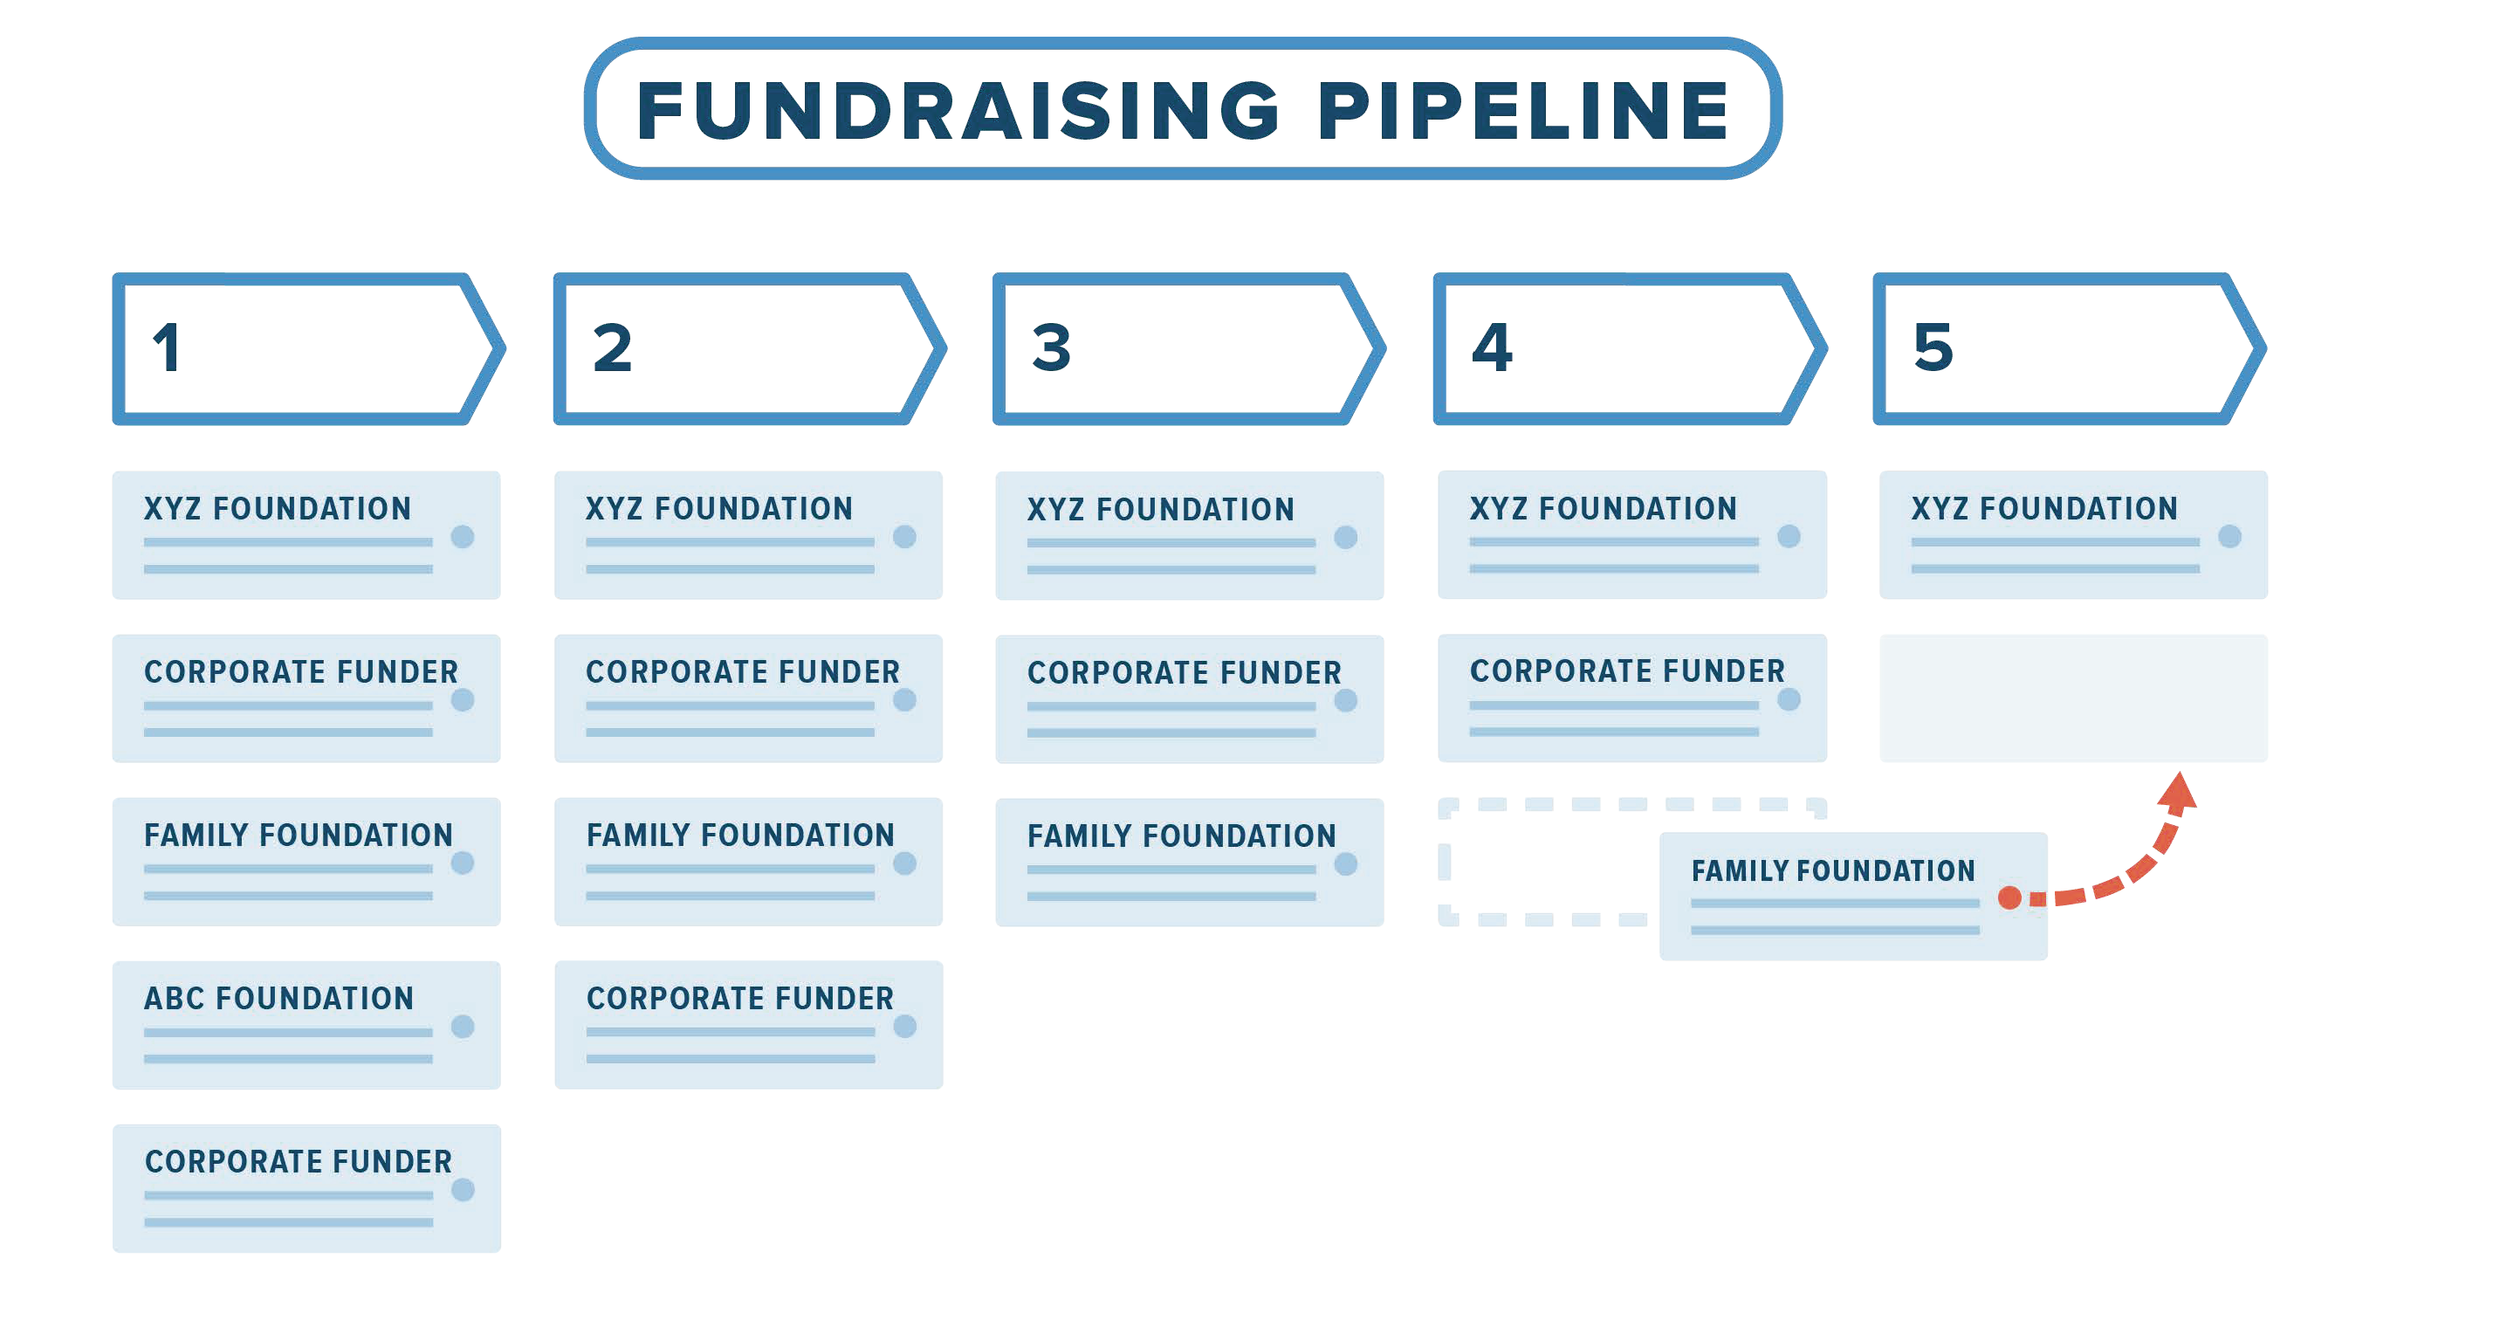 FundraisingPipeline sketch 1.png